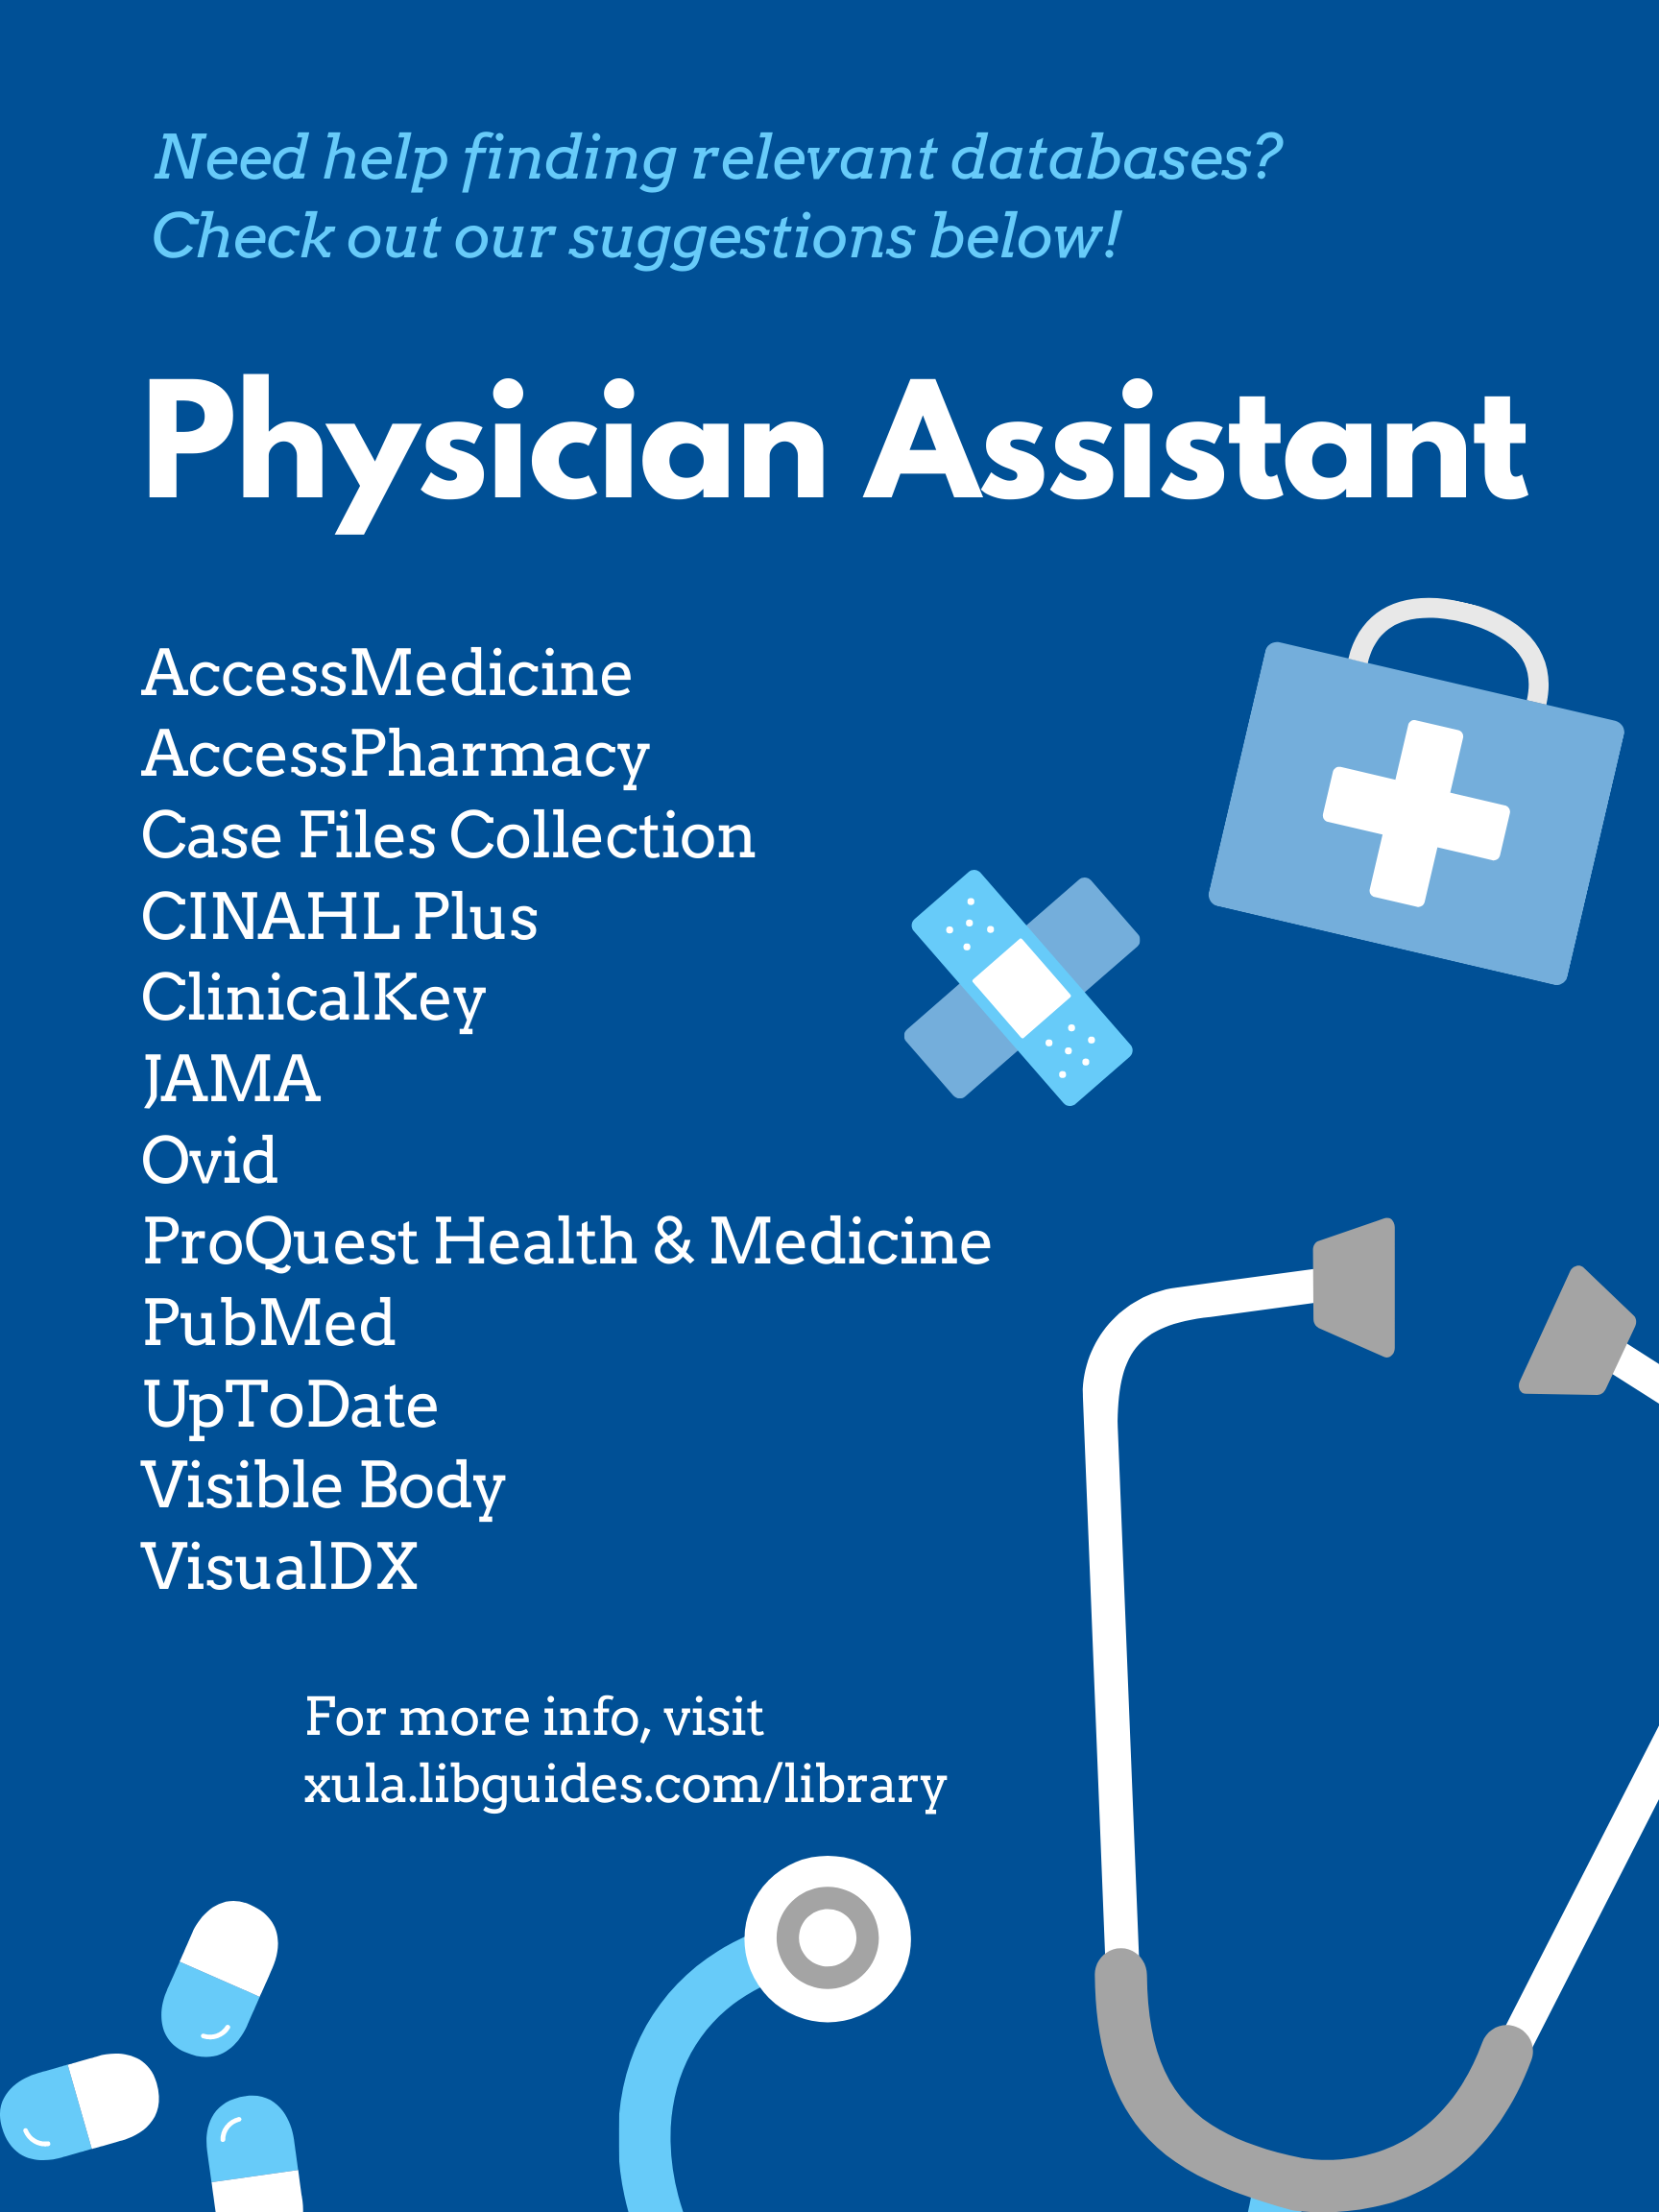 Physician Assistant Databases